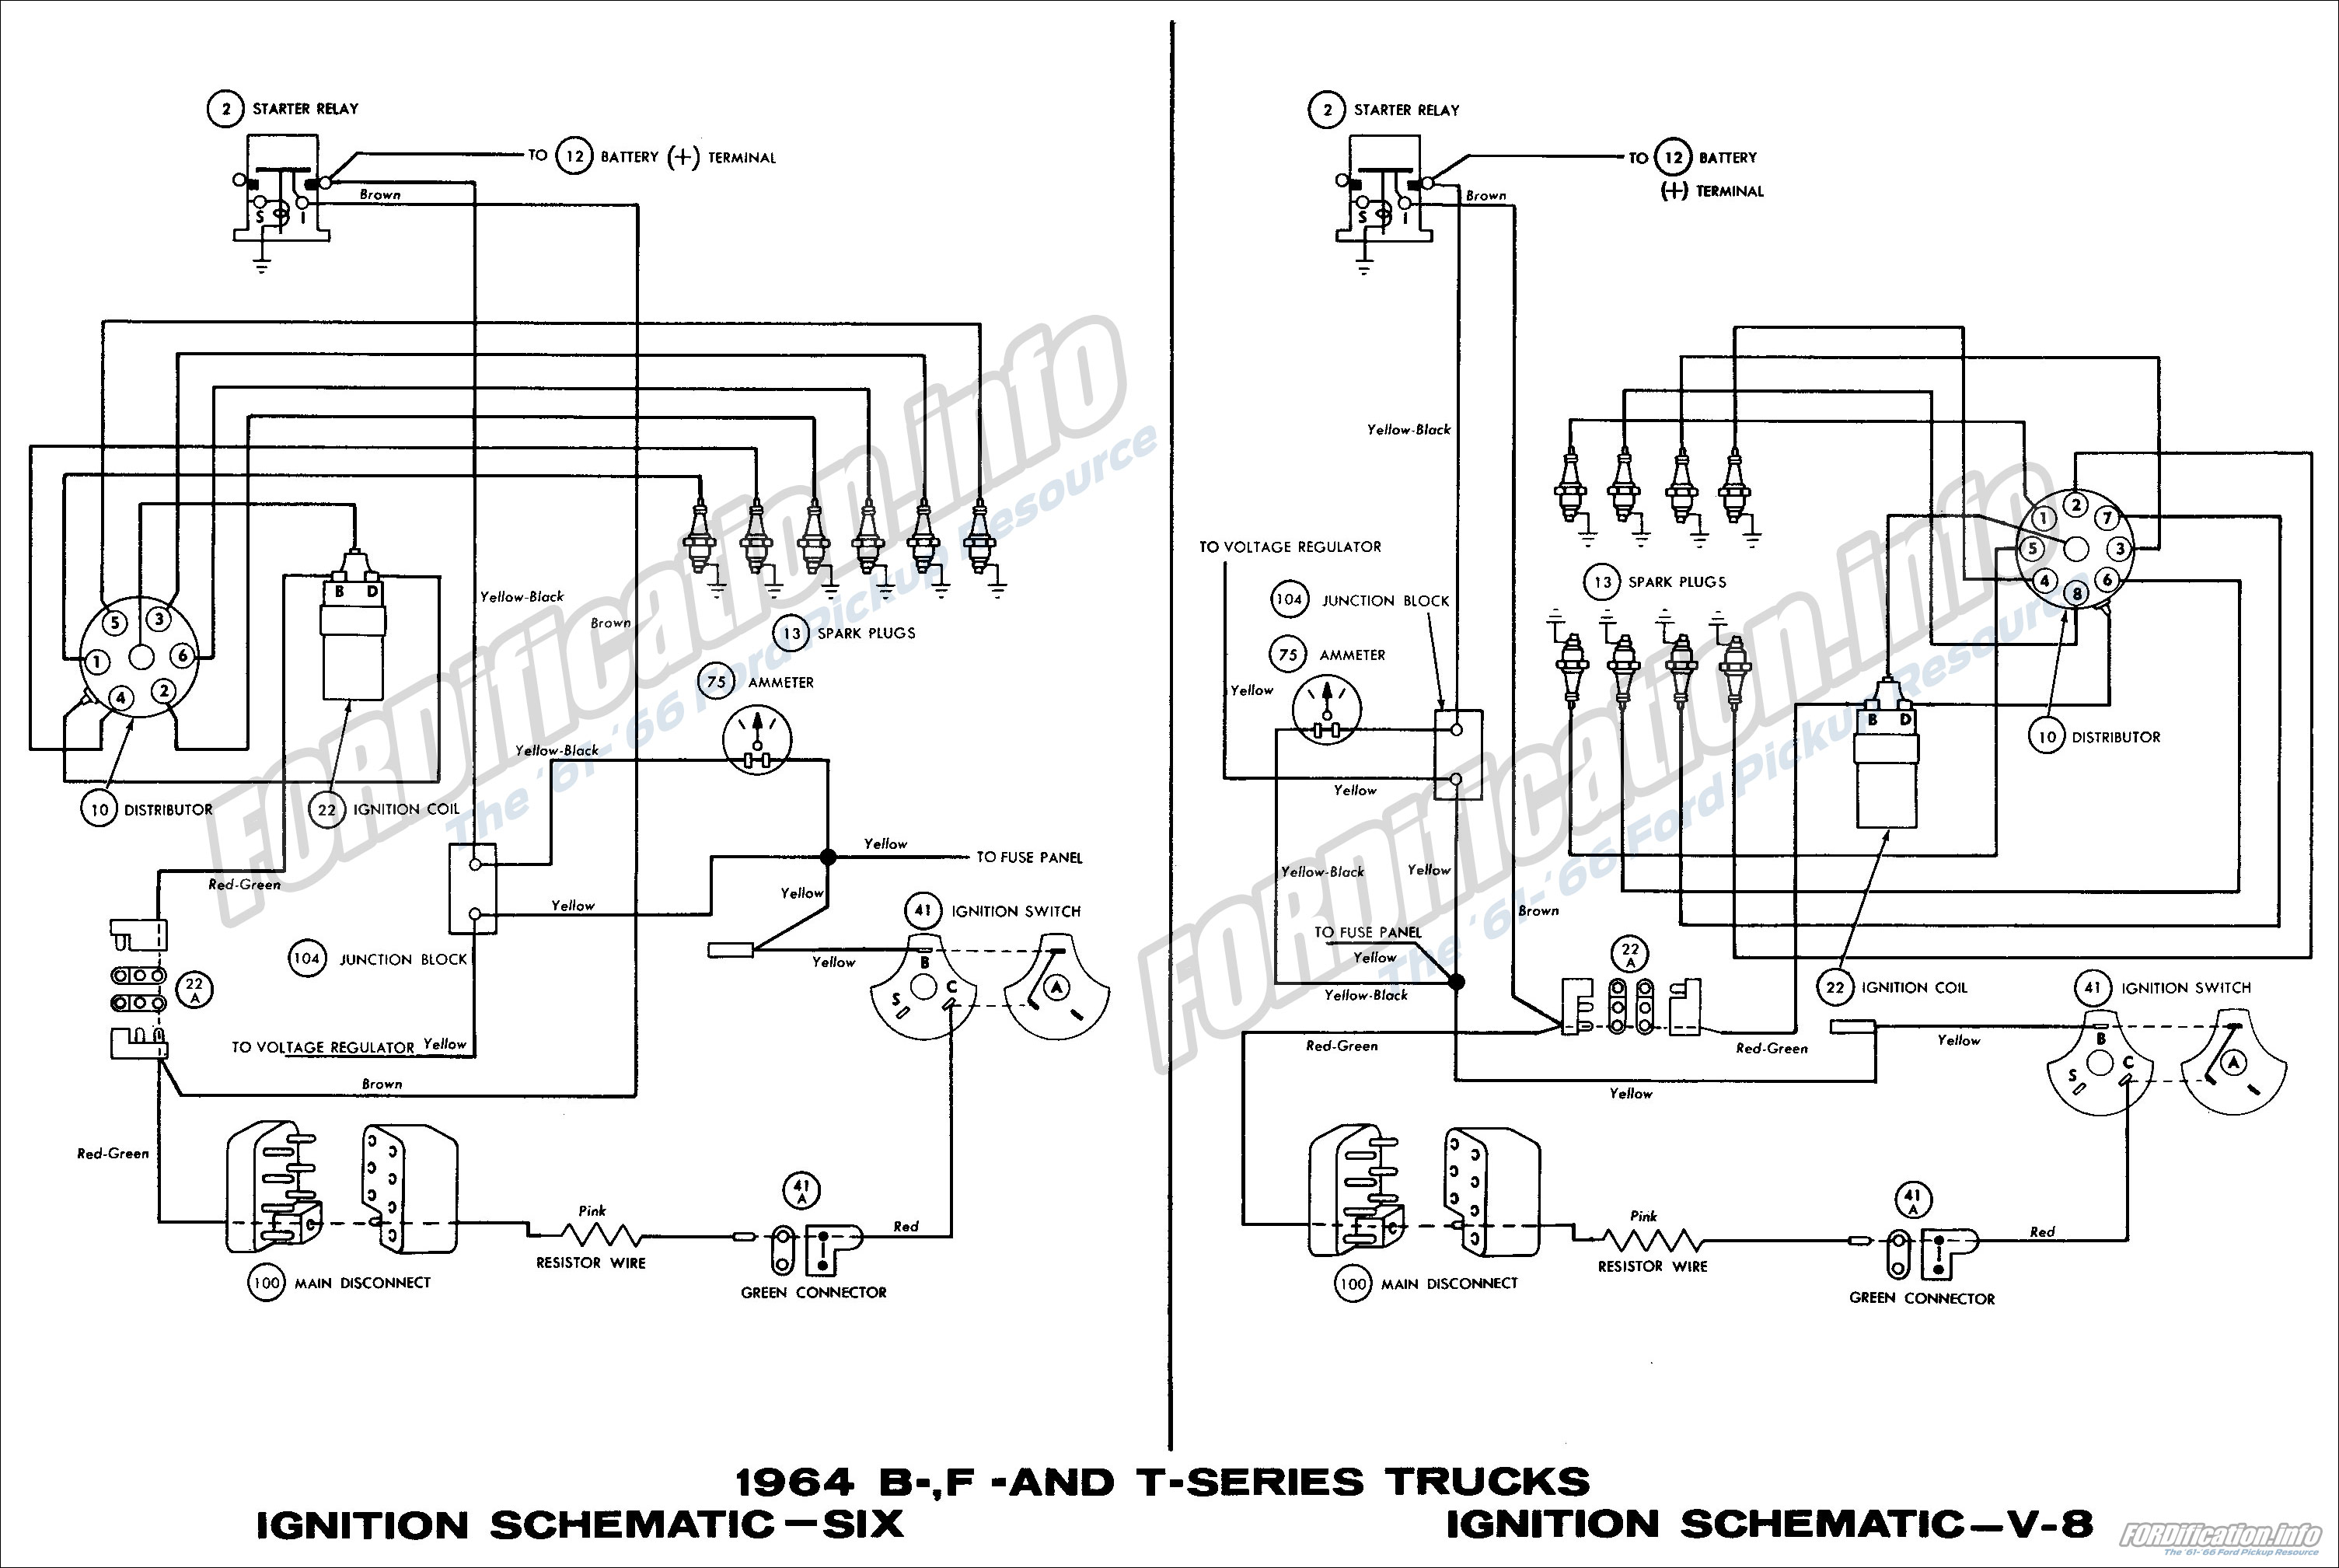 1964 B-, F- and T-series Trucks Ignition Schematics - Six and V8